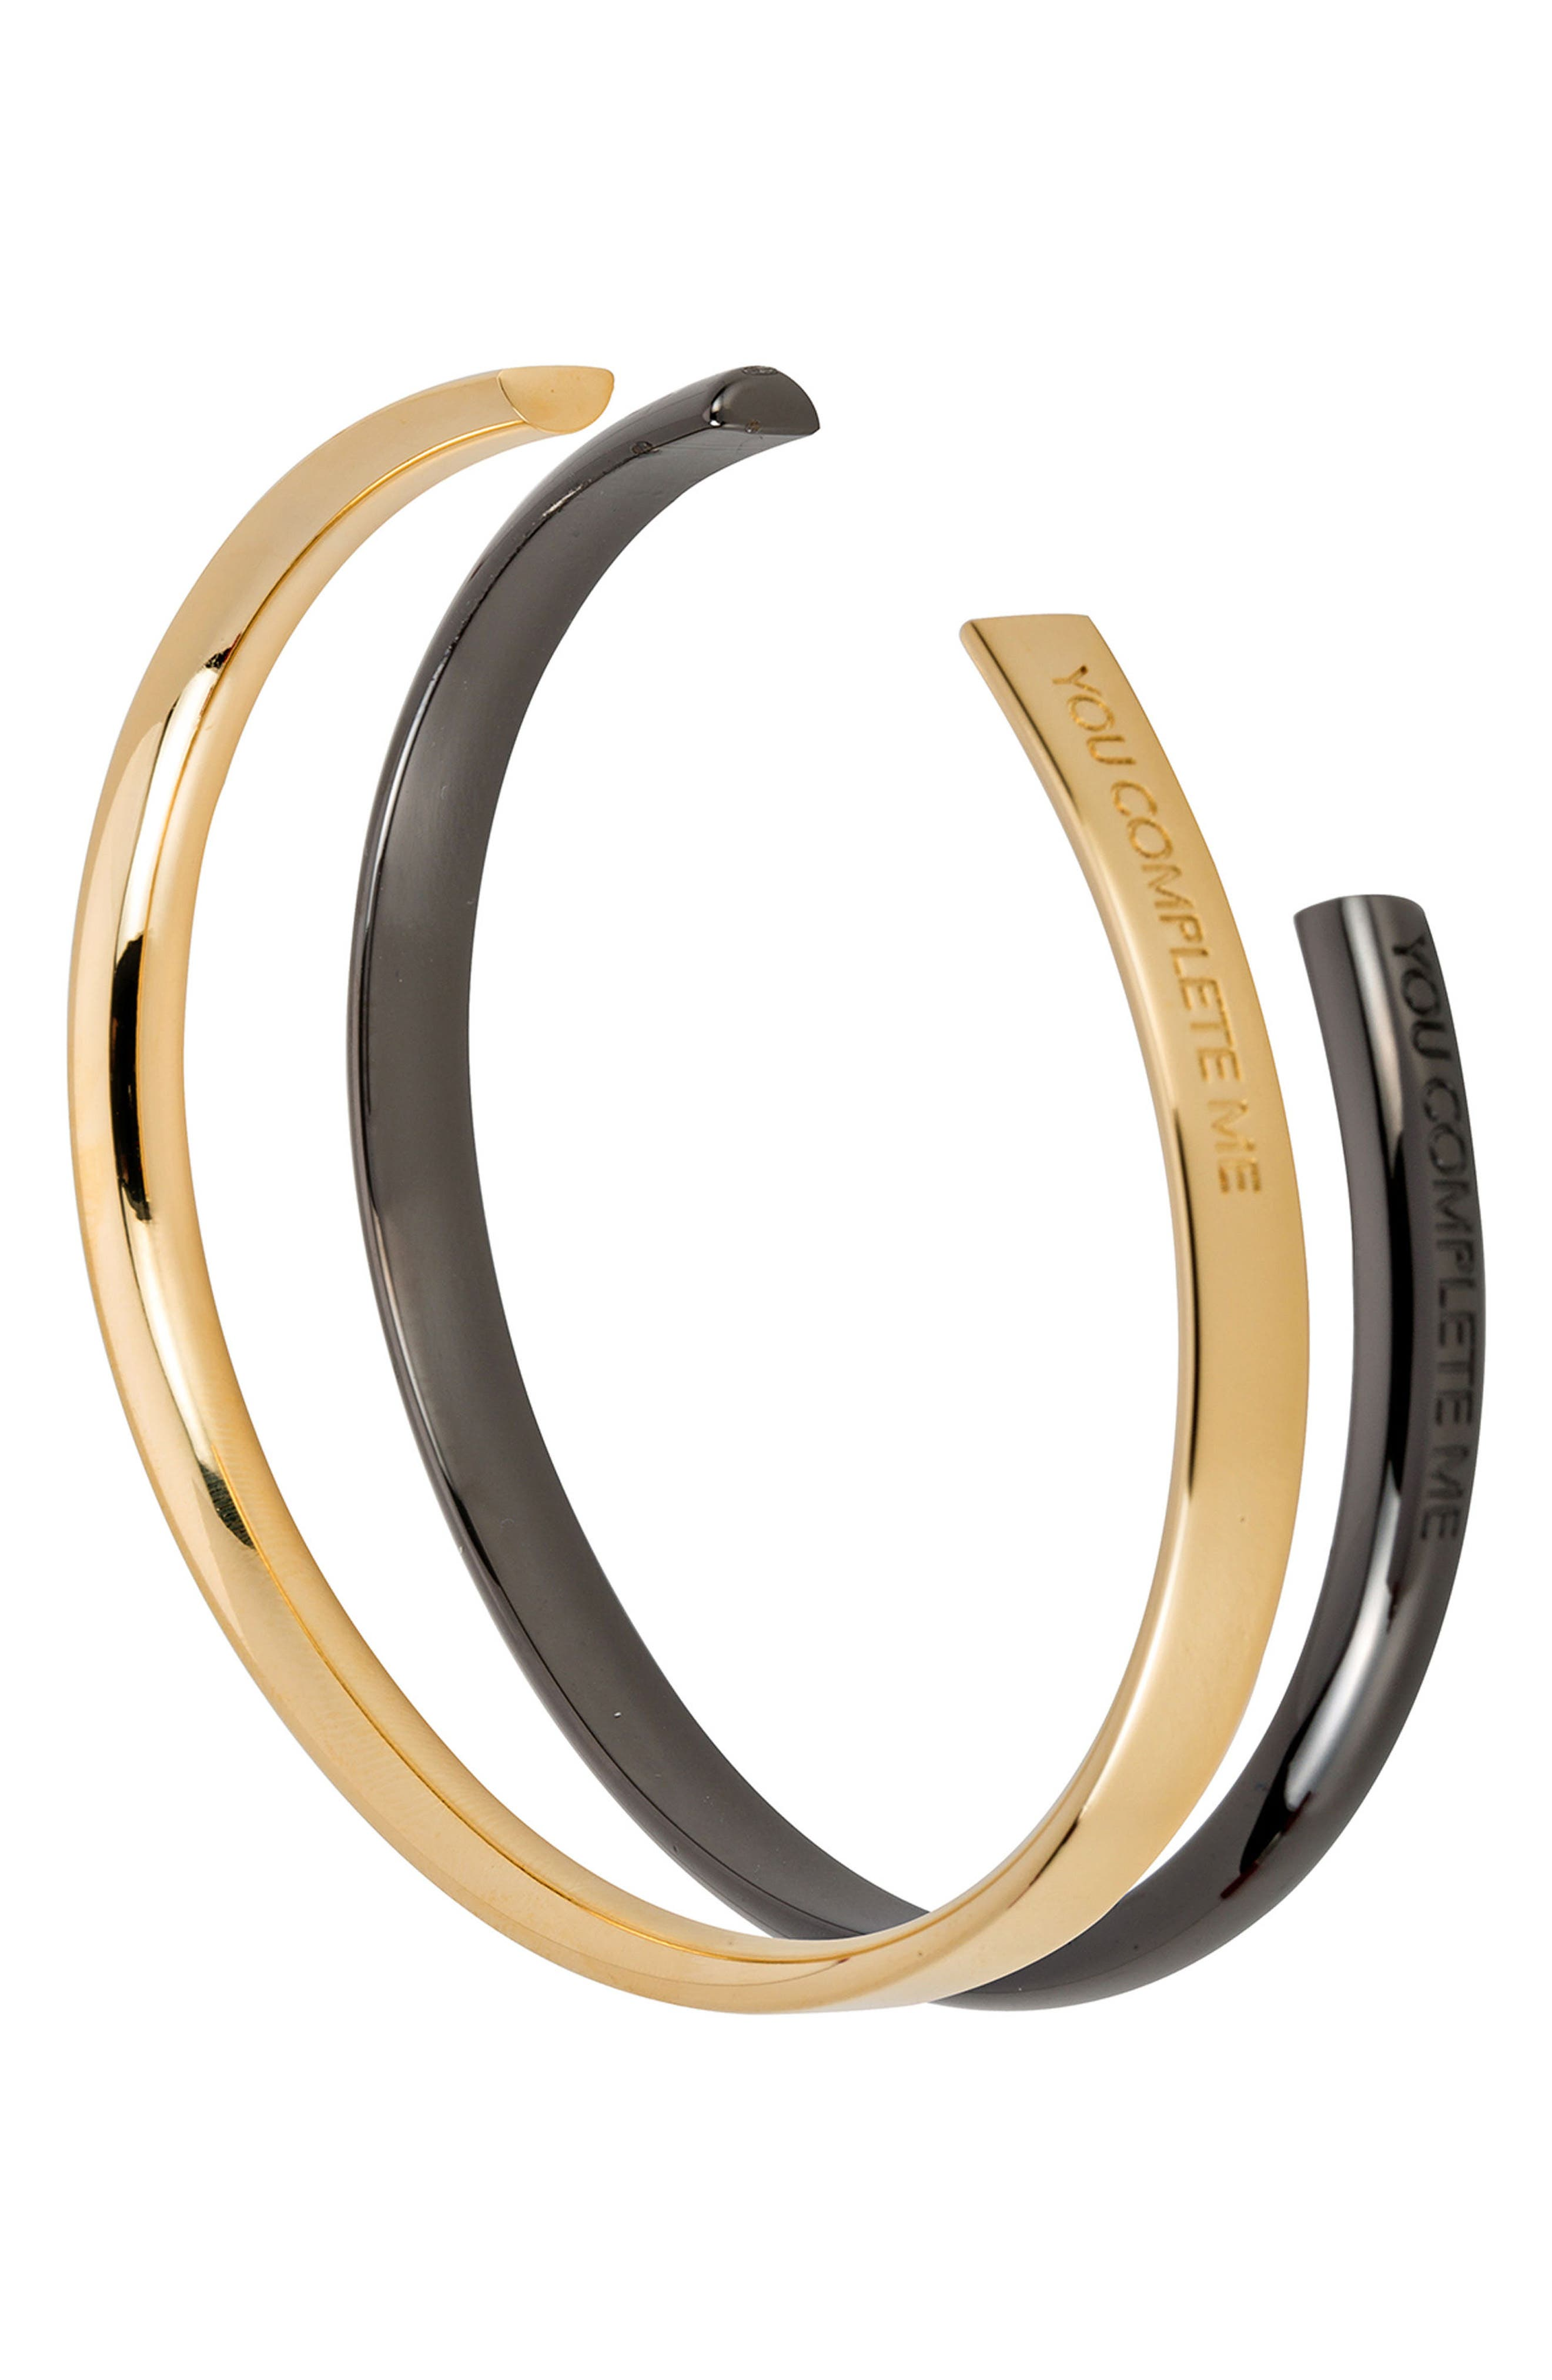 You Complete Me Set of 2 Cuffs,                         Main,                         color, Gold